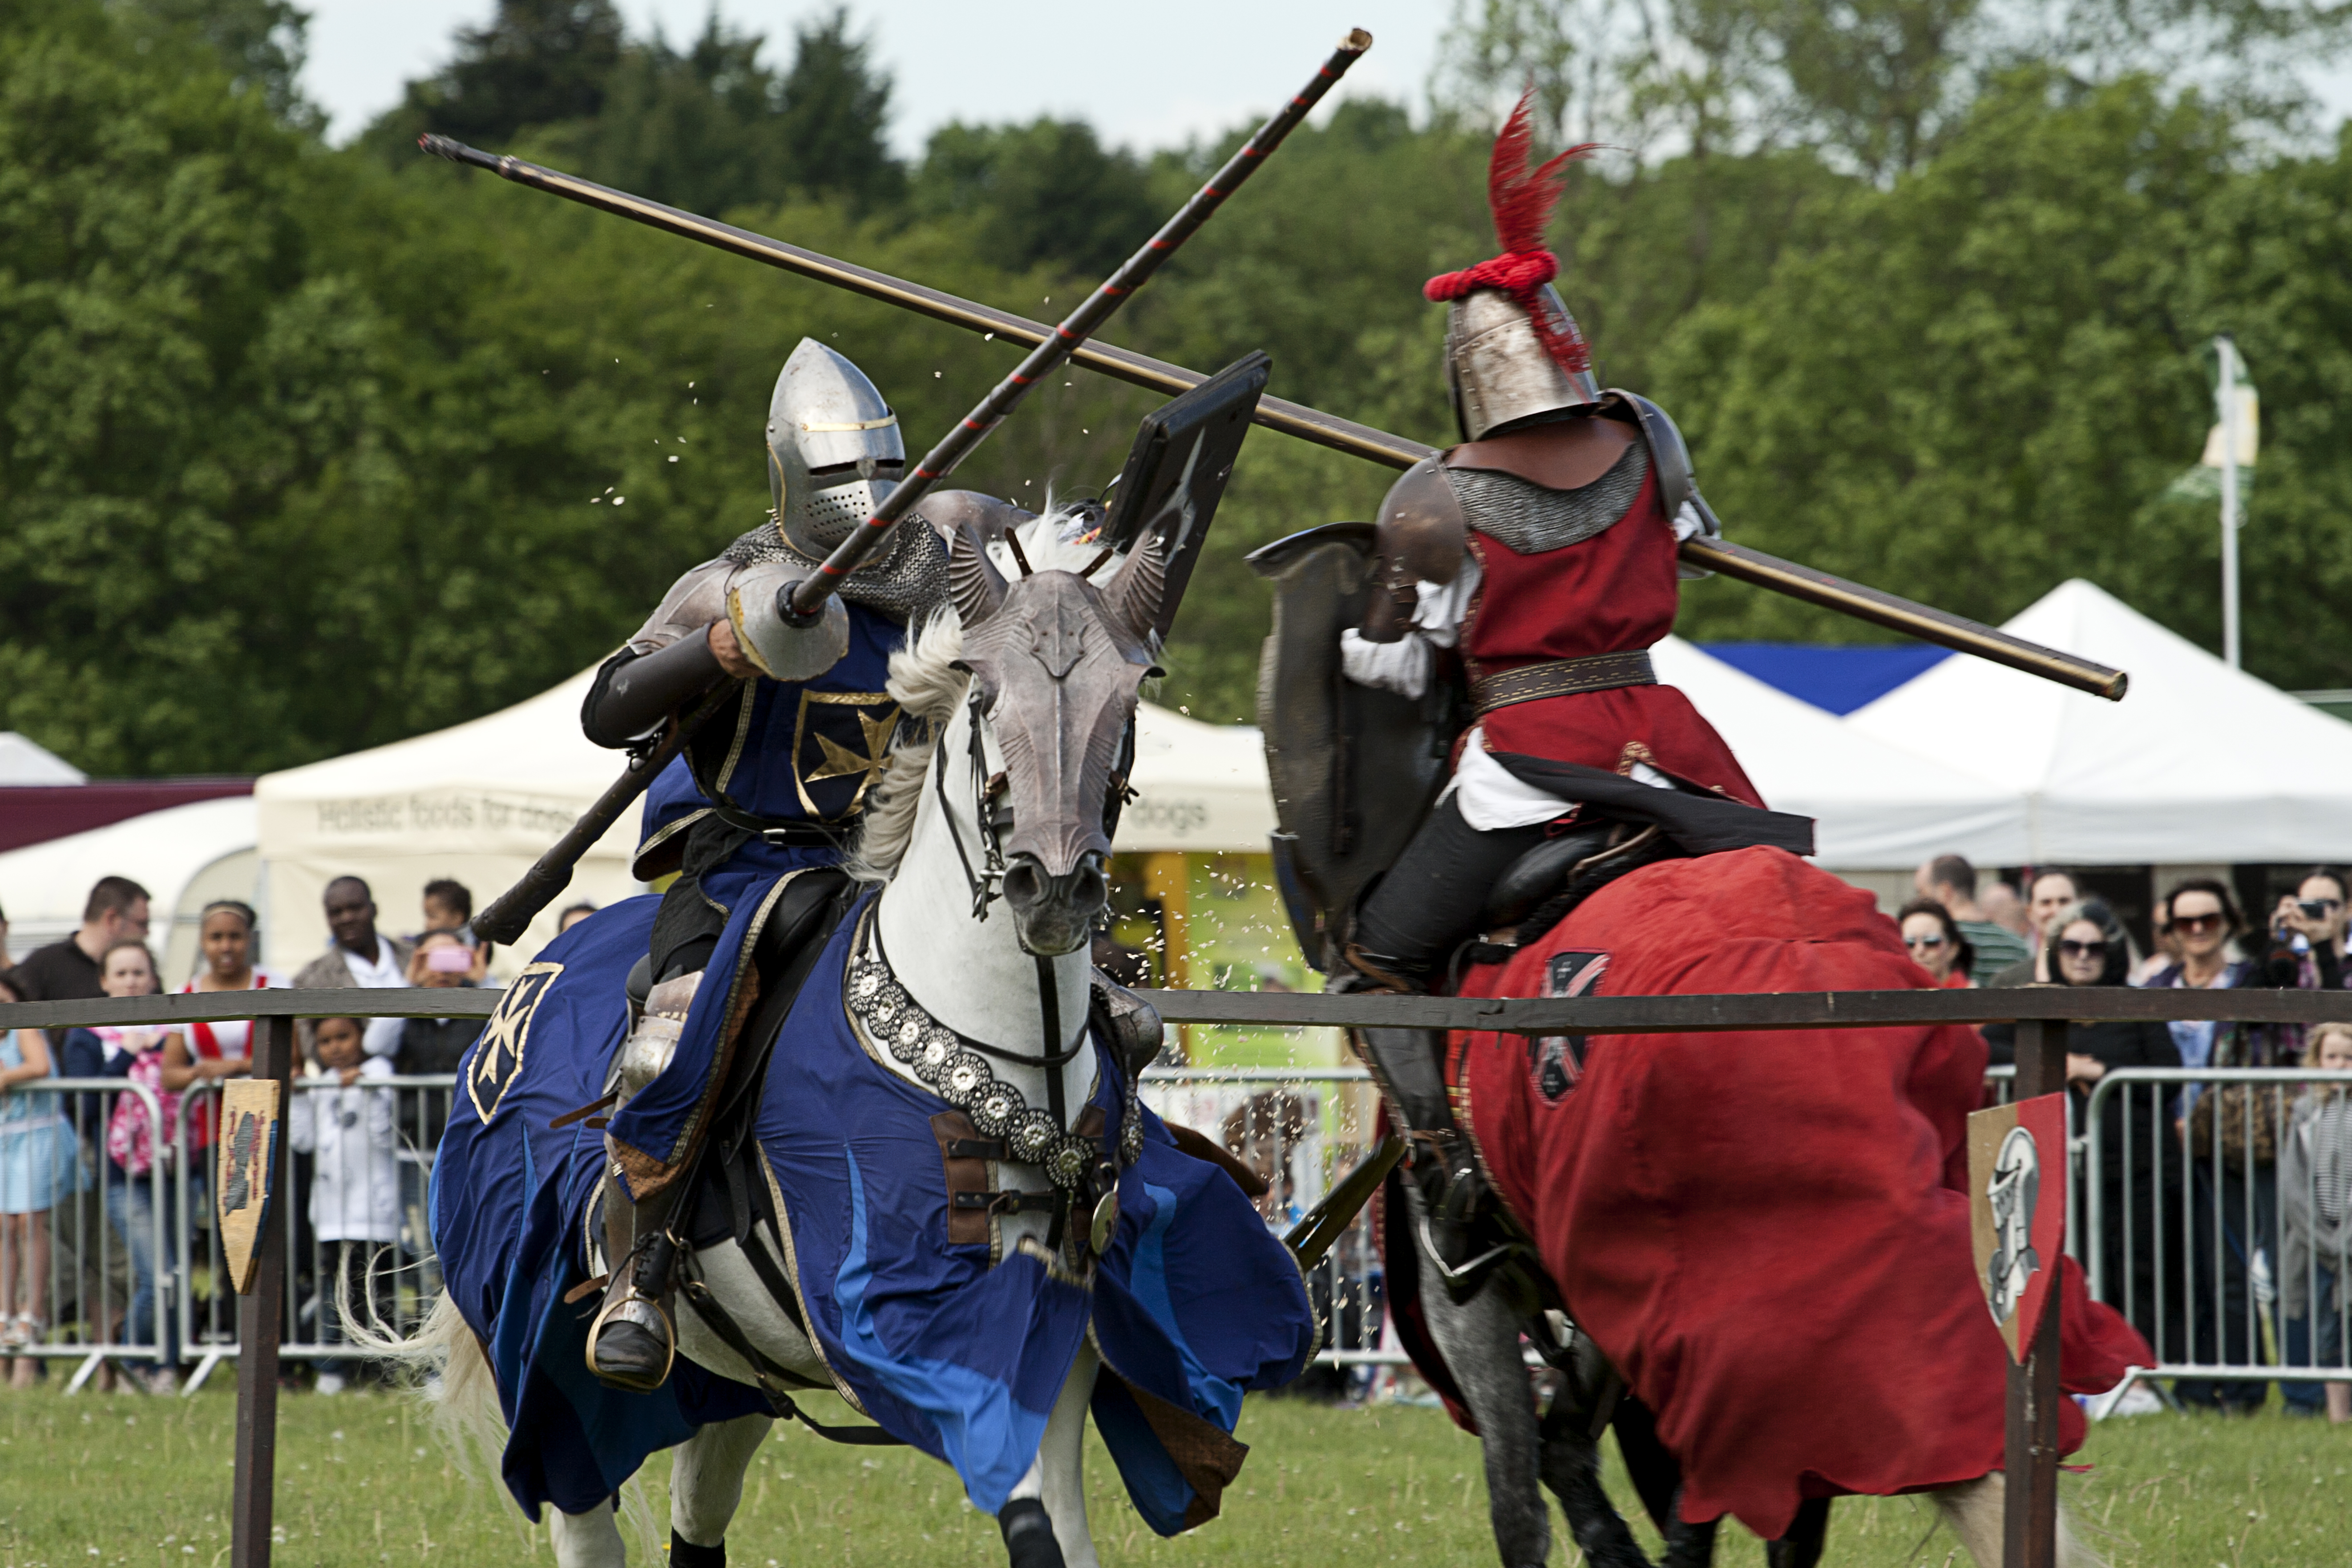 Sources from the 14th and 15th centuries are used to recreate jousting